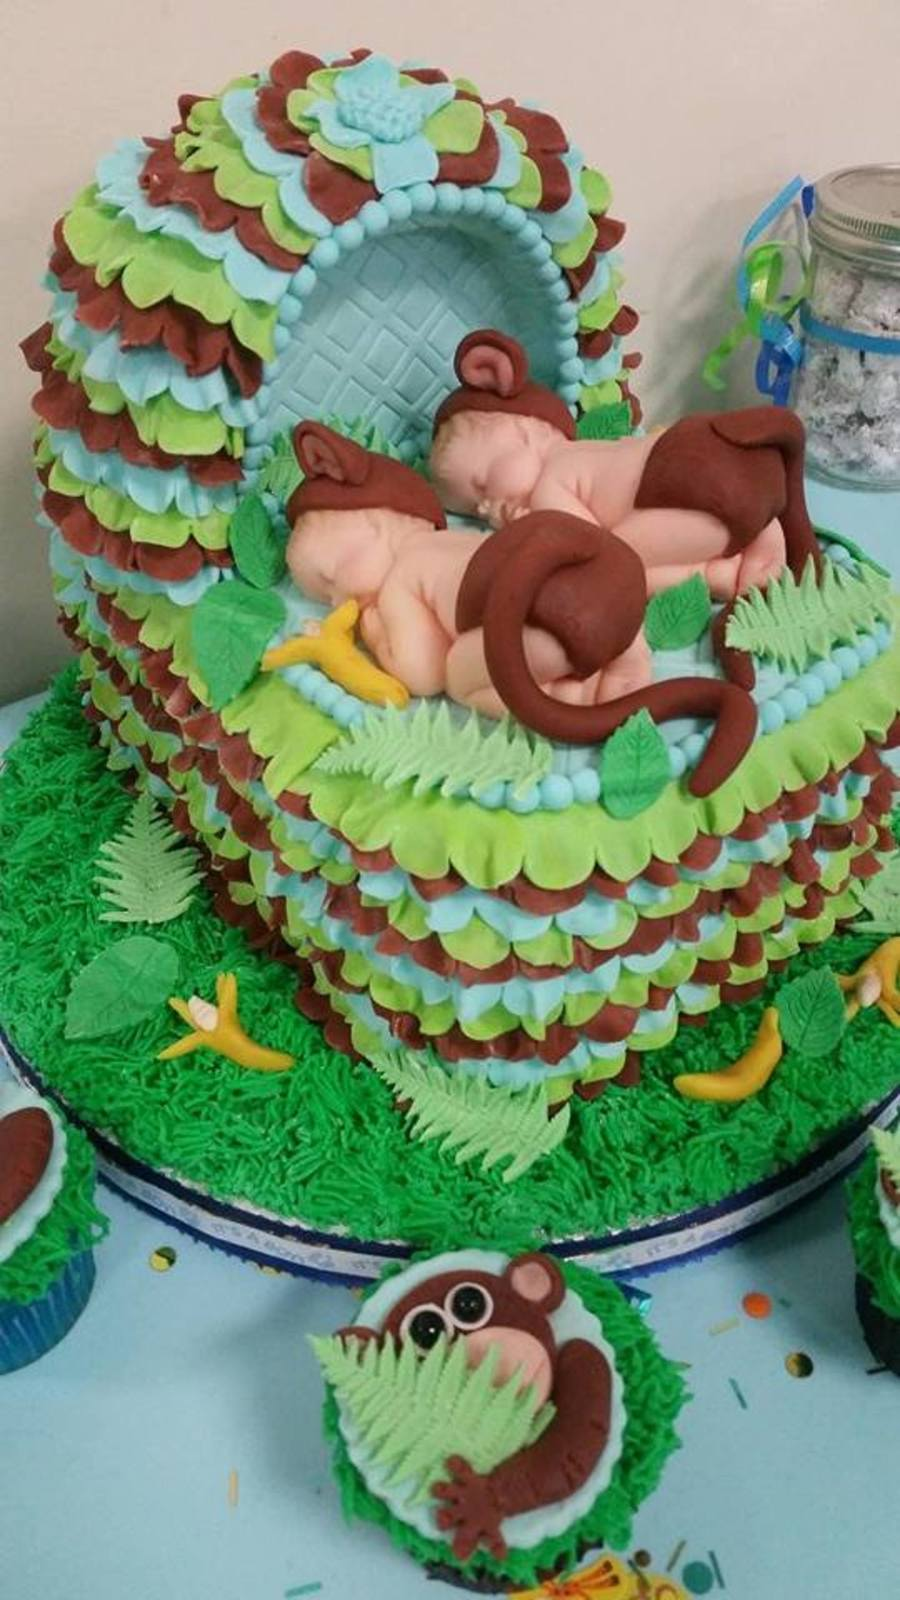 Twins baby shower cake with monkey theme - Baby shower cakes monkey theme ...